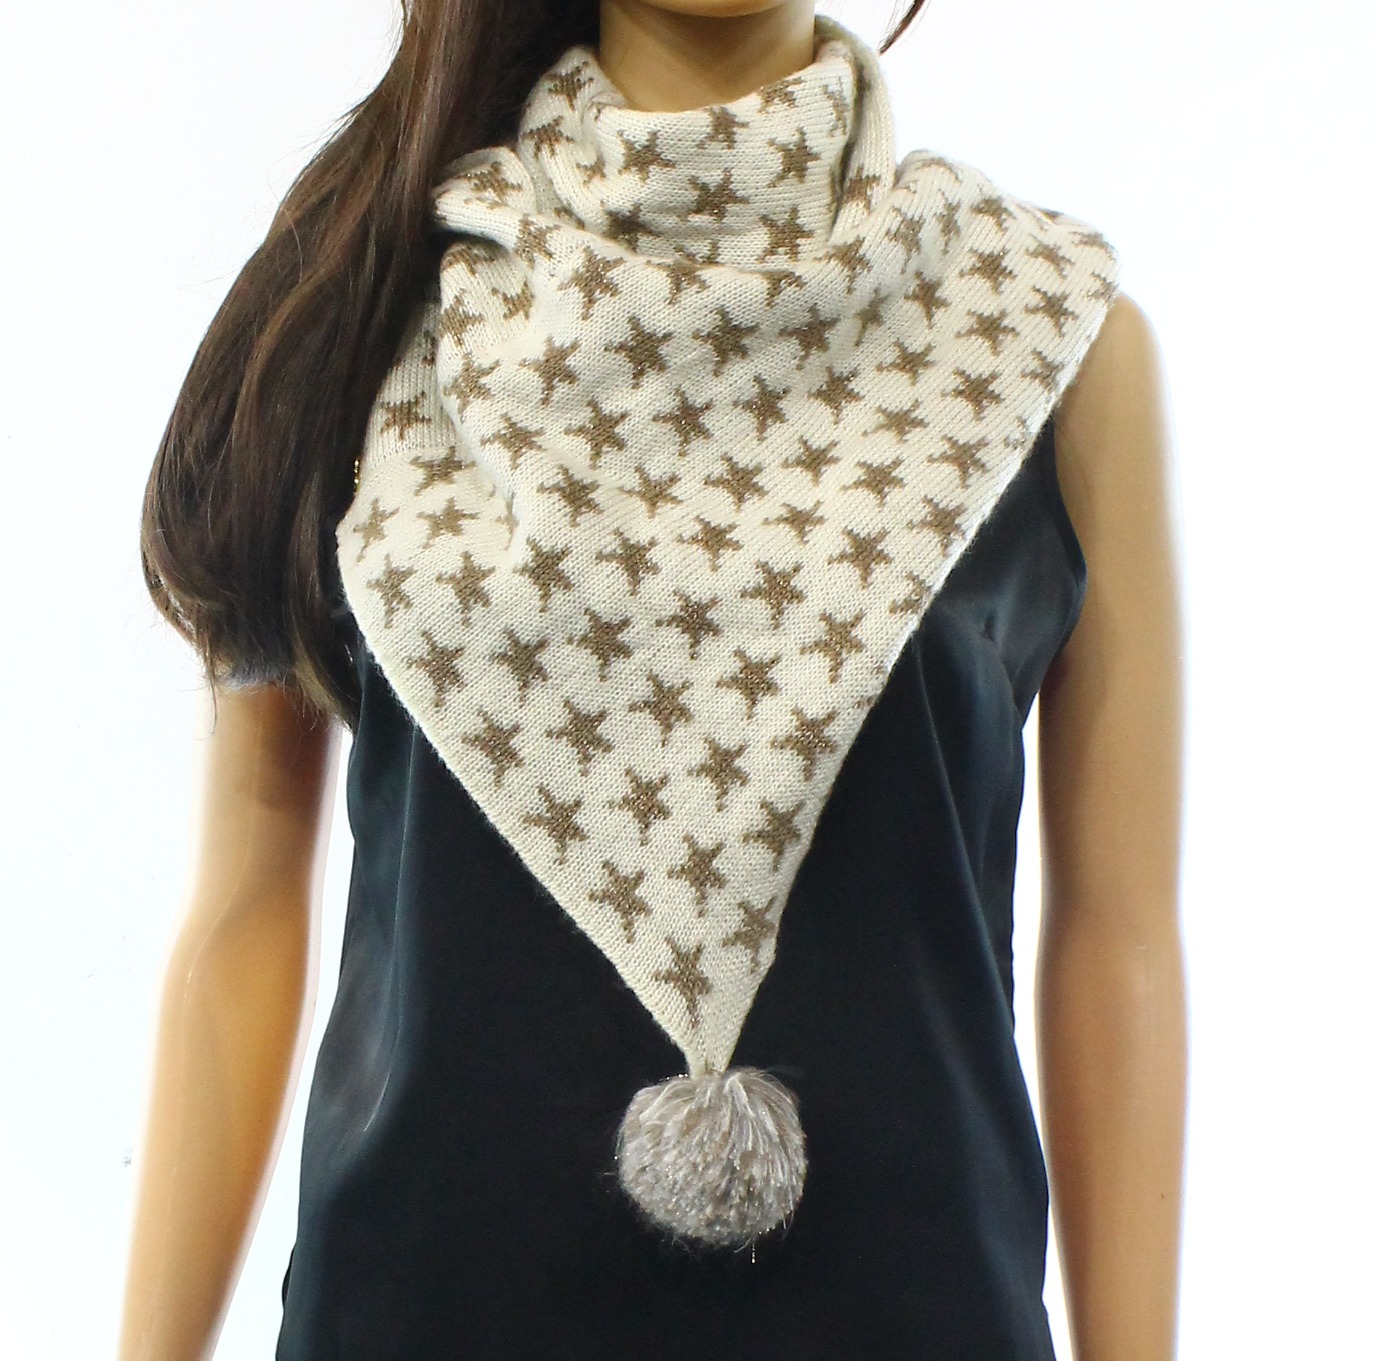 Betsey Johnson NEW Beige One Size Starfish Printed Cowl/Infinity Scarf $48